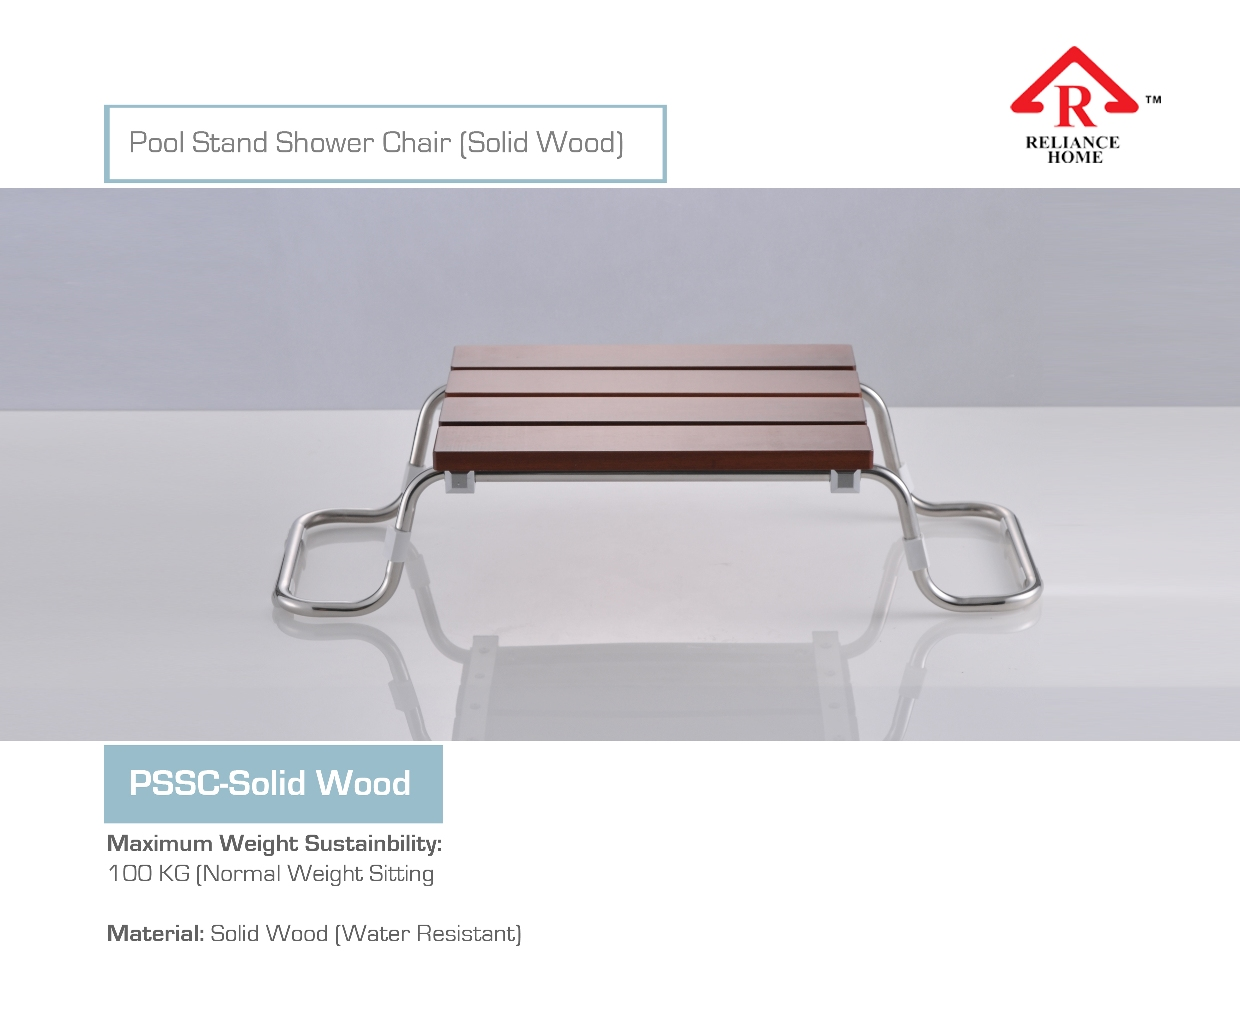 PSSCsolidwood